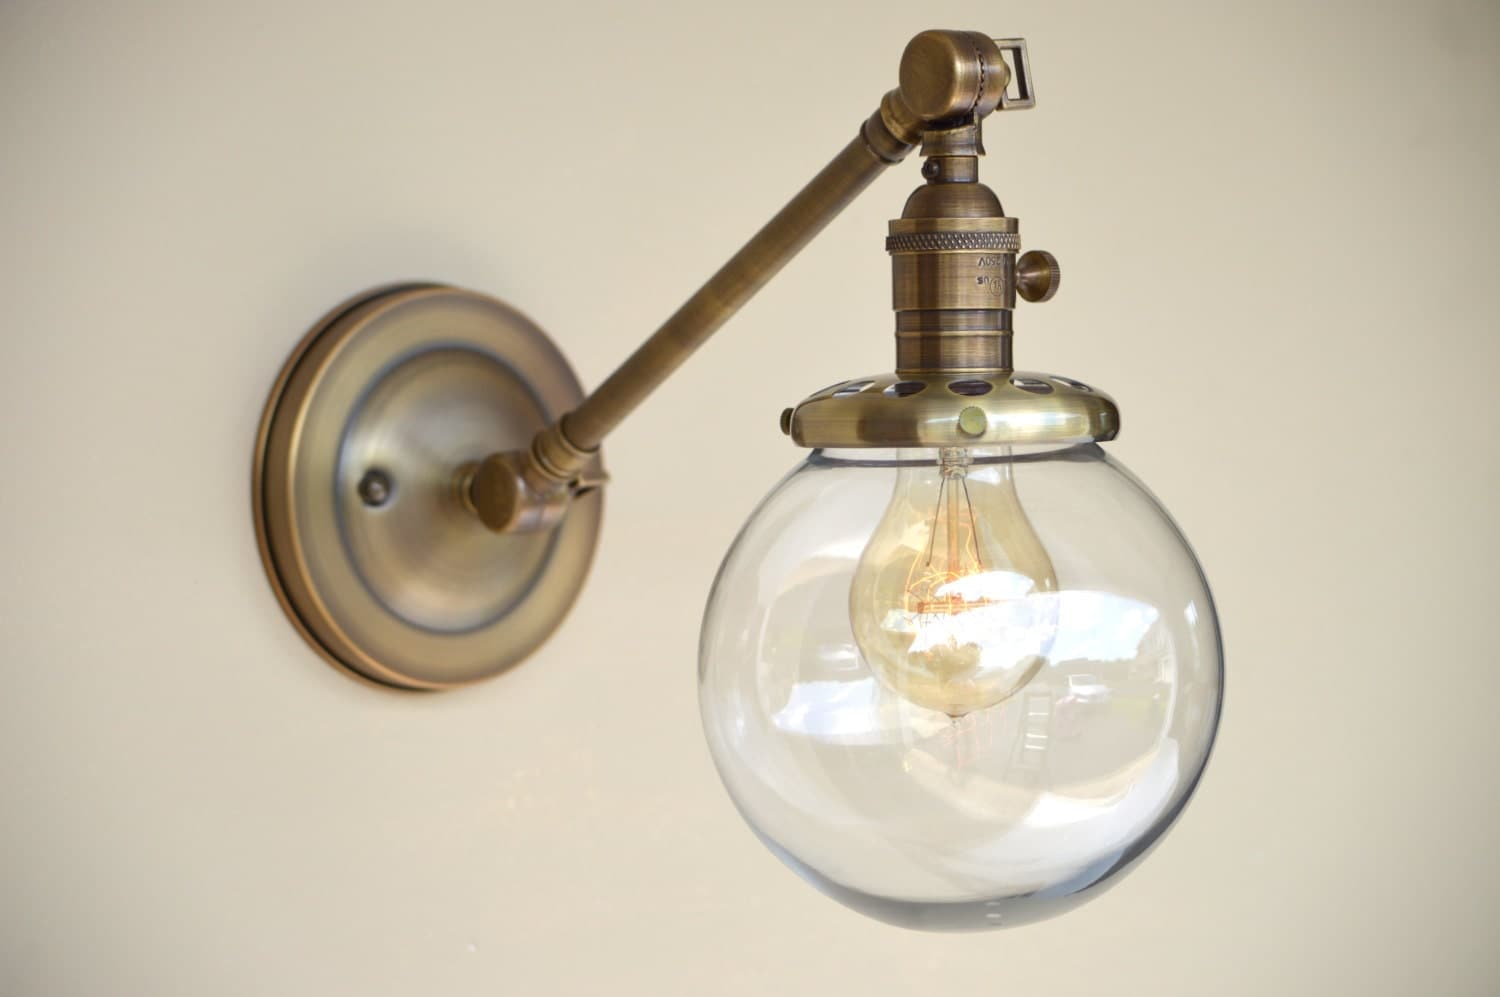 Bistro Globe Bath Sconce 4 Light: Sconce Lighting With Glass Globe Shade Adjustable Arm Fixture